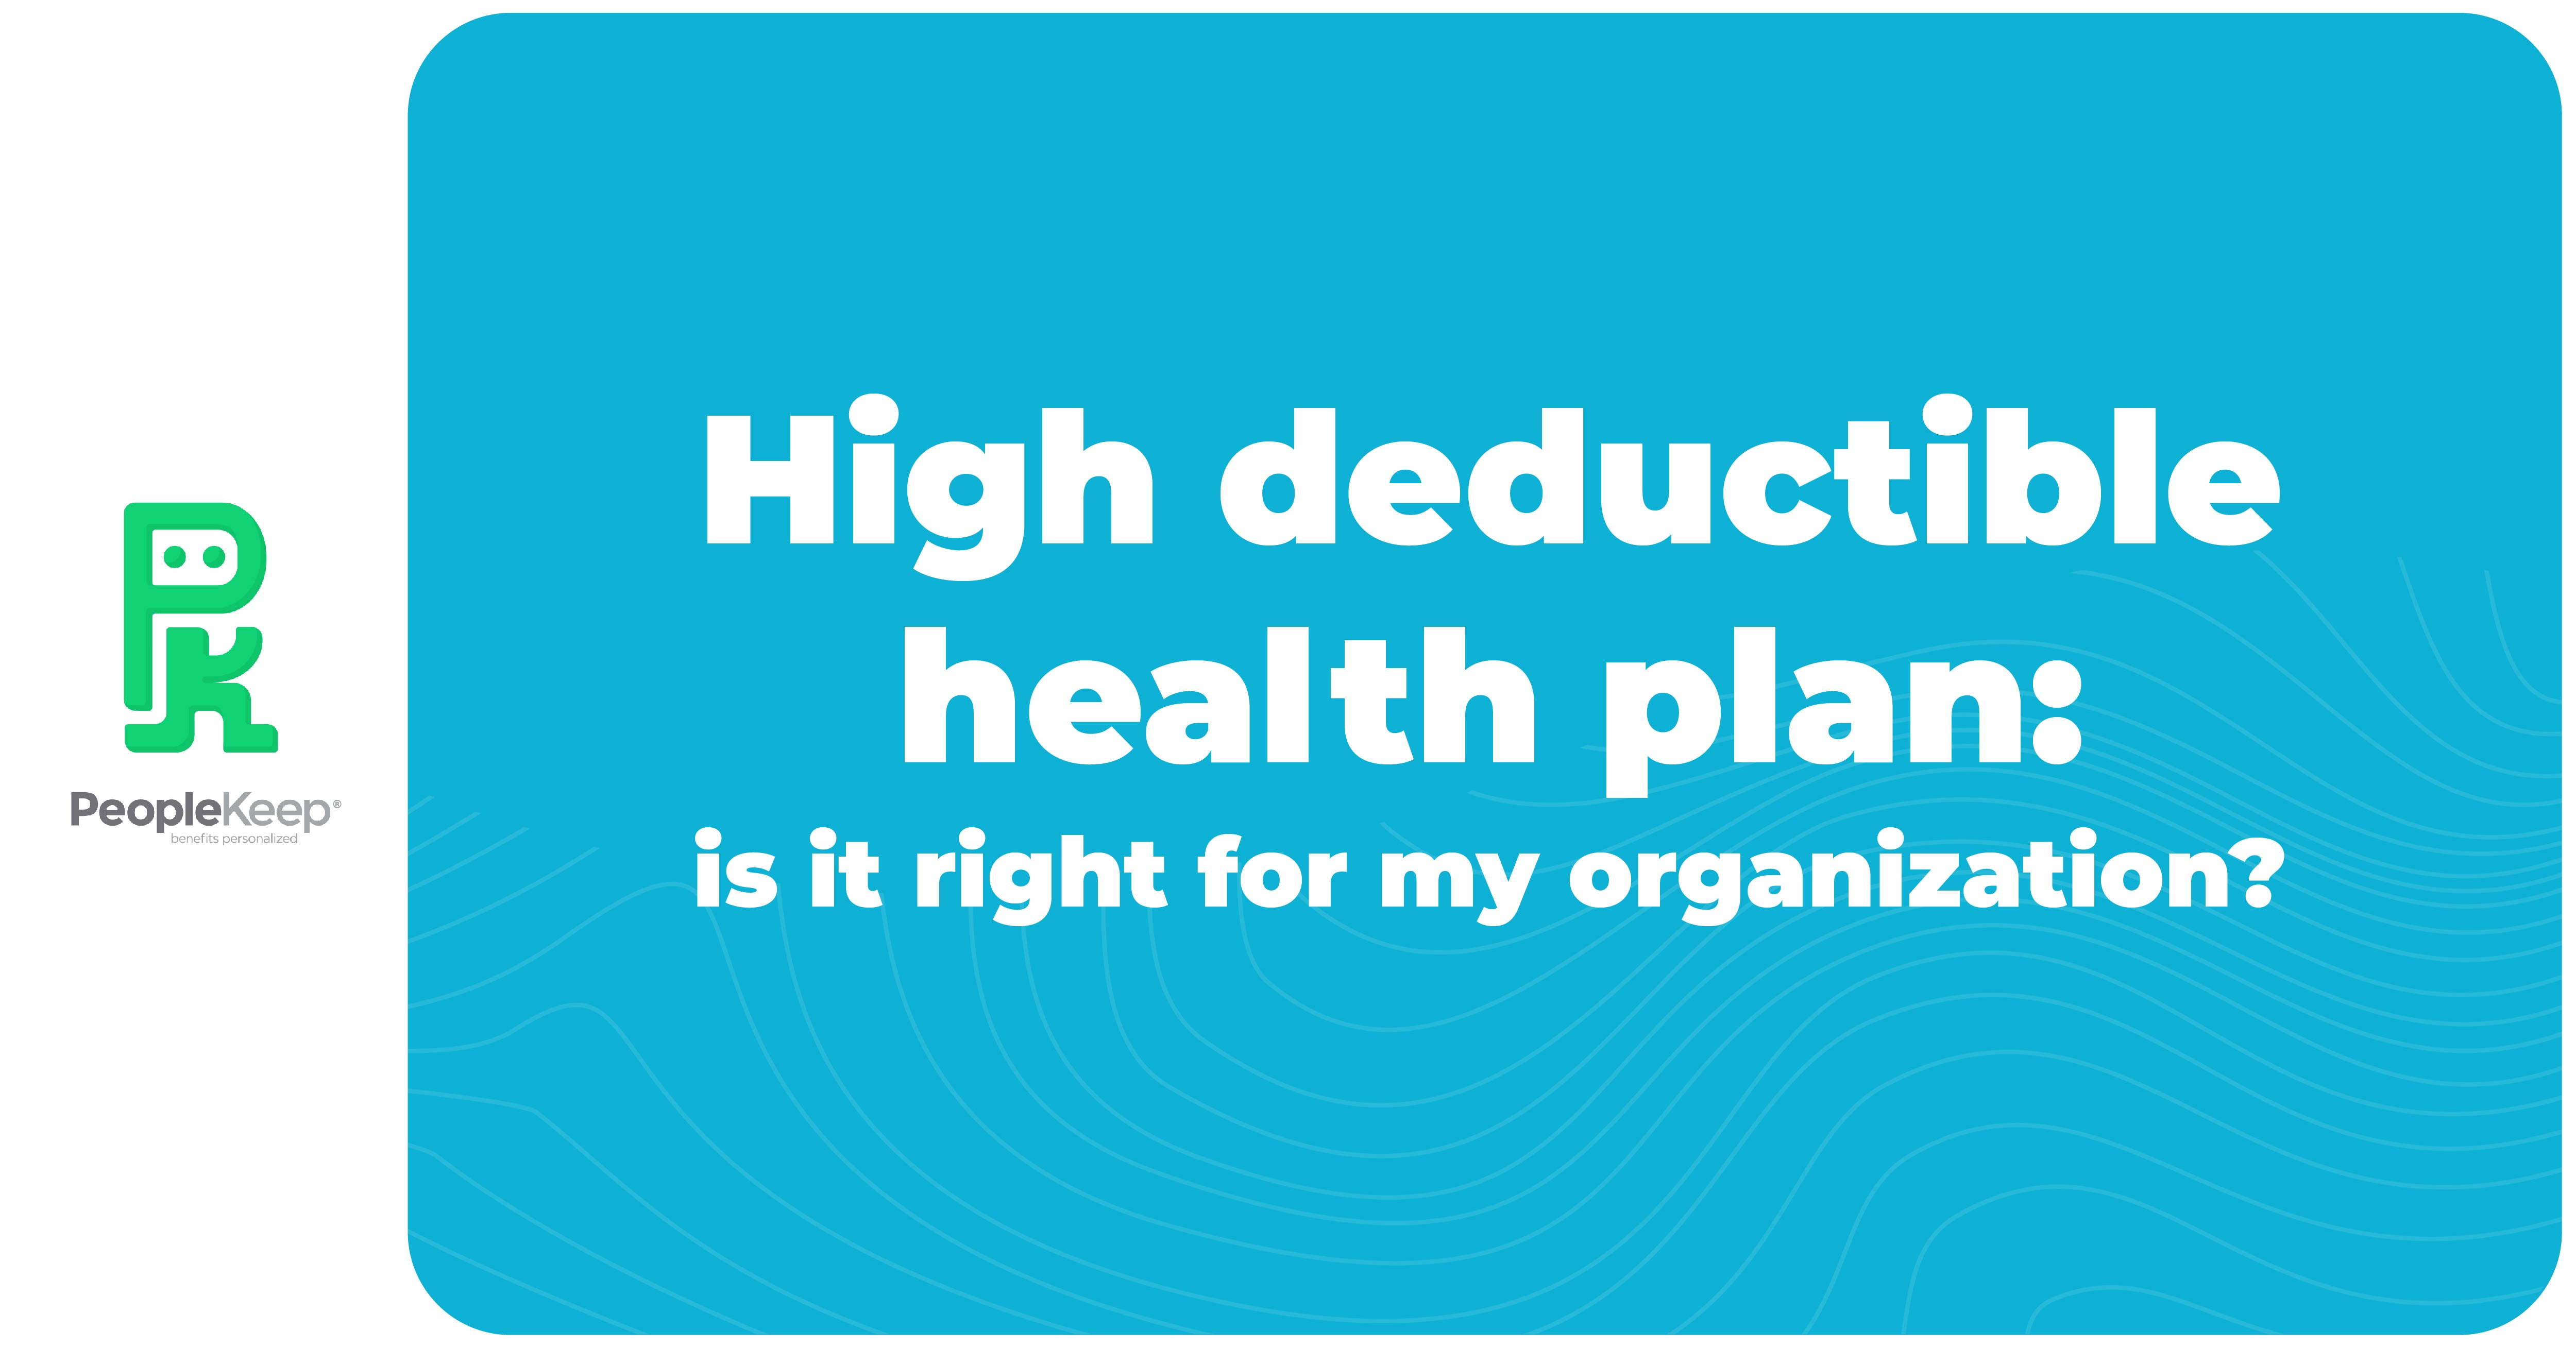 High deductible health plan: is it right for my organization?